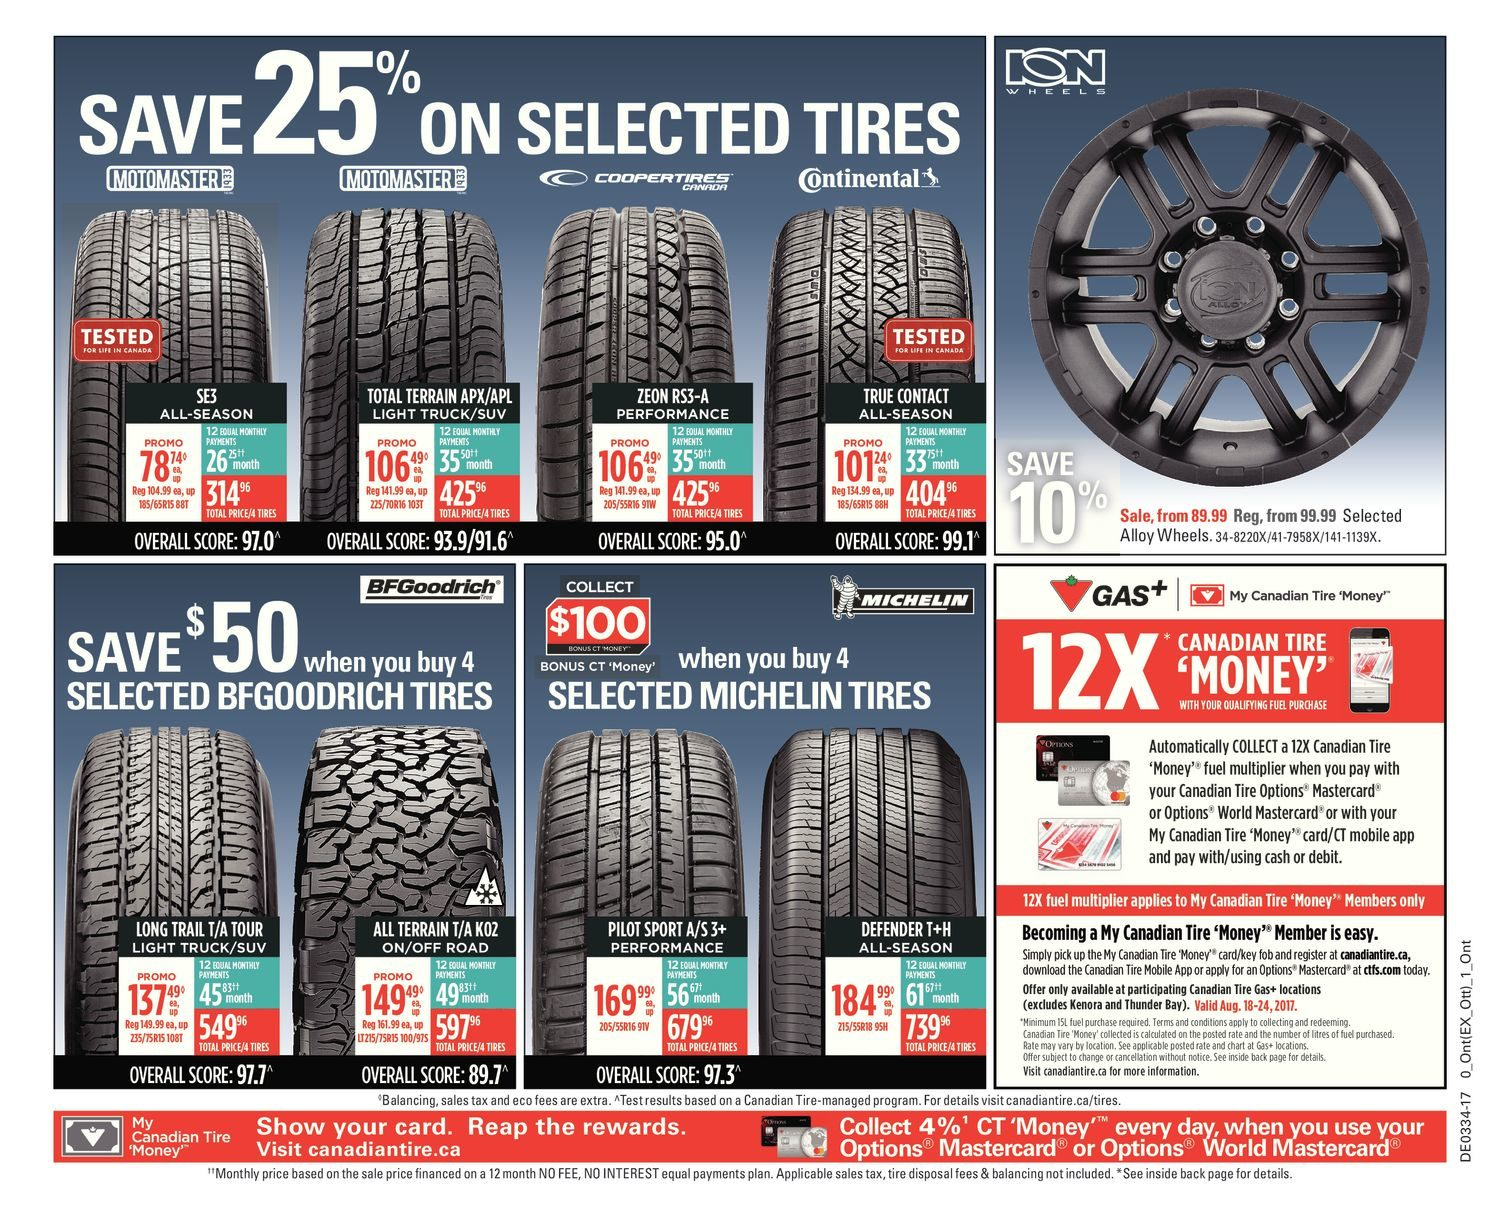 Canadian Tire Weekly Flyer Weekly Back To School Aug 18 24